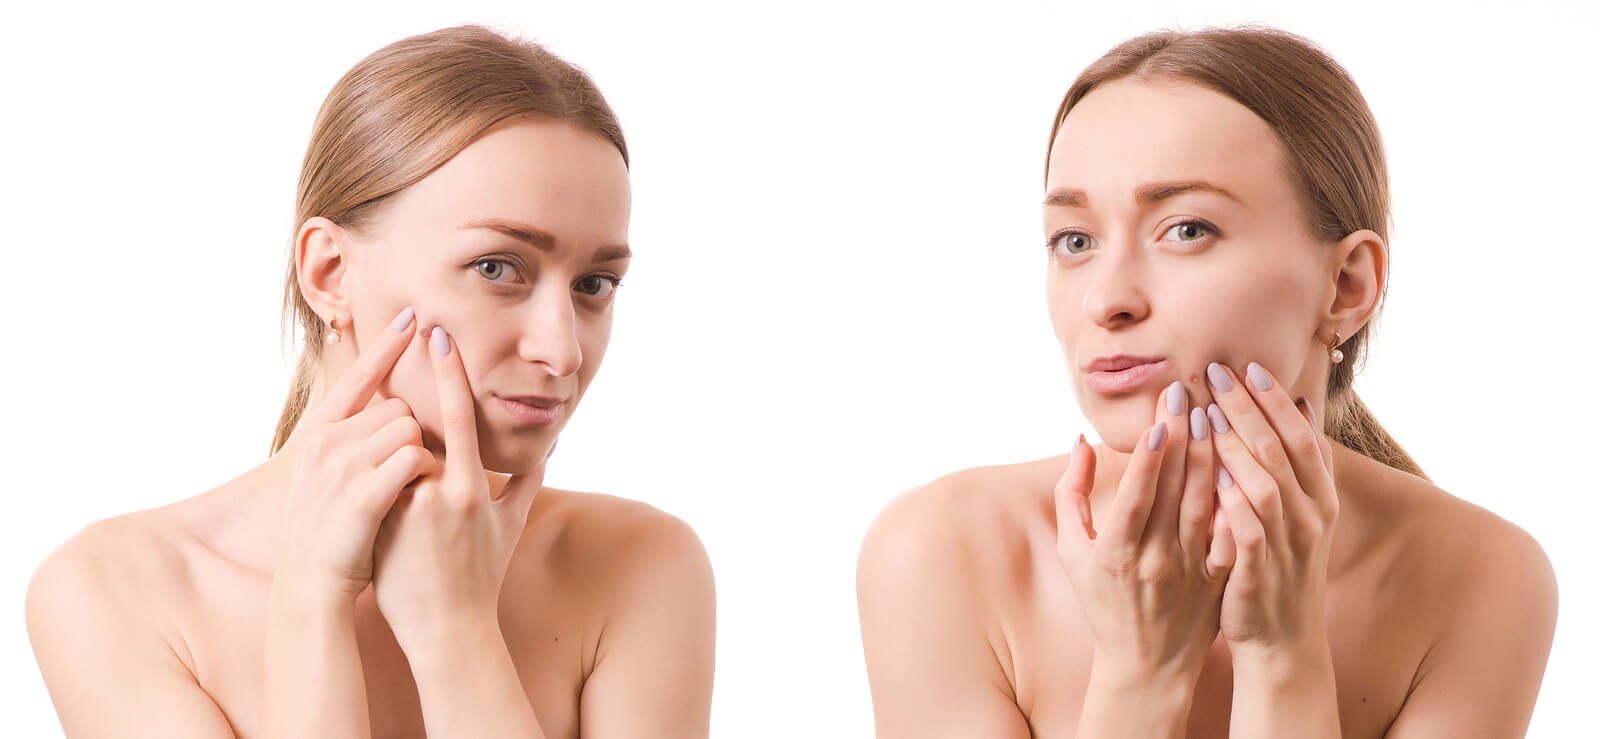 Cold Sore or Pimple? How to Spot the Difference | PlushCare